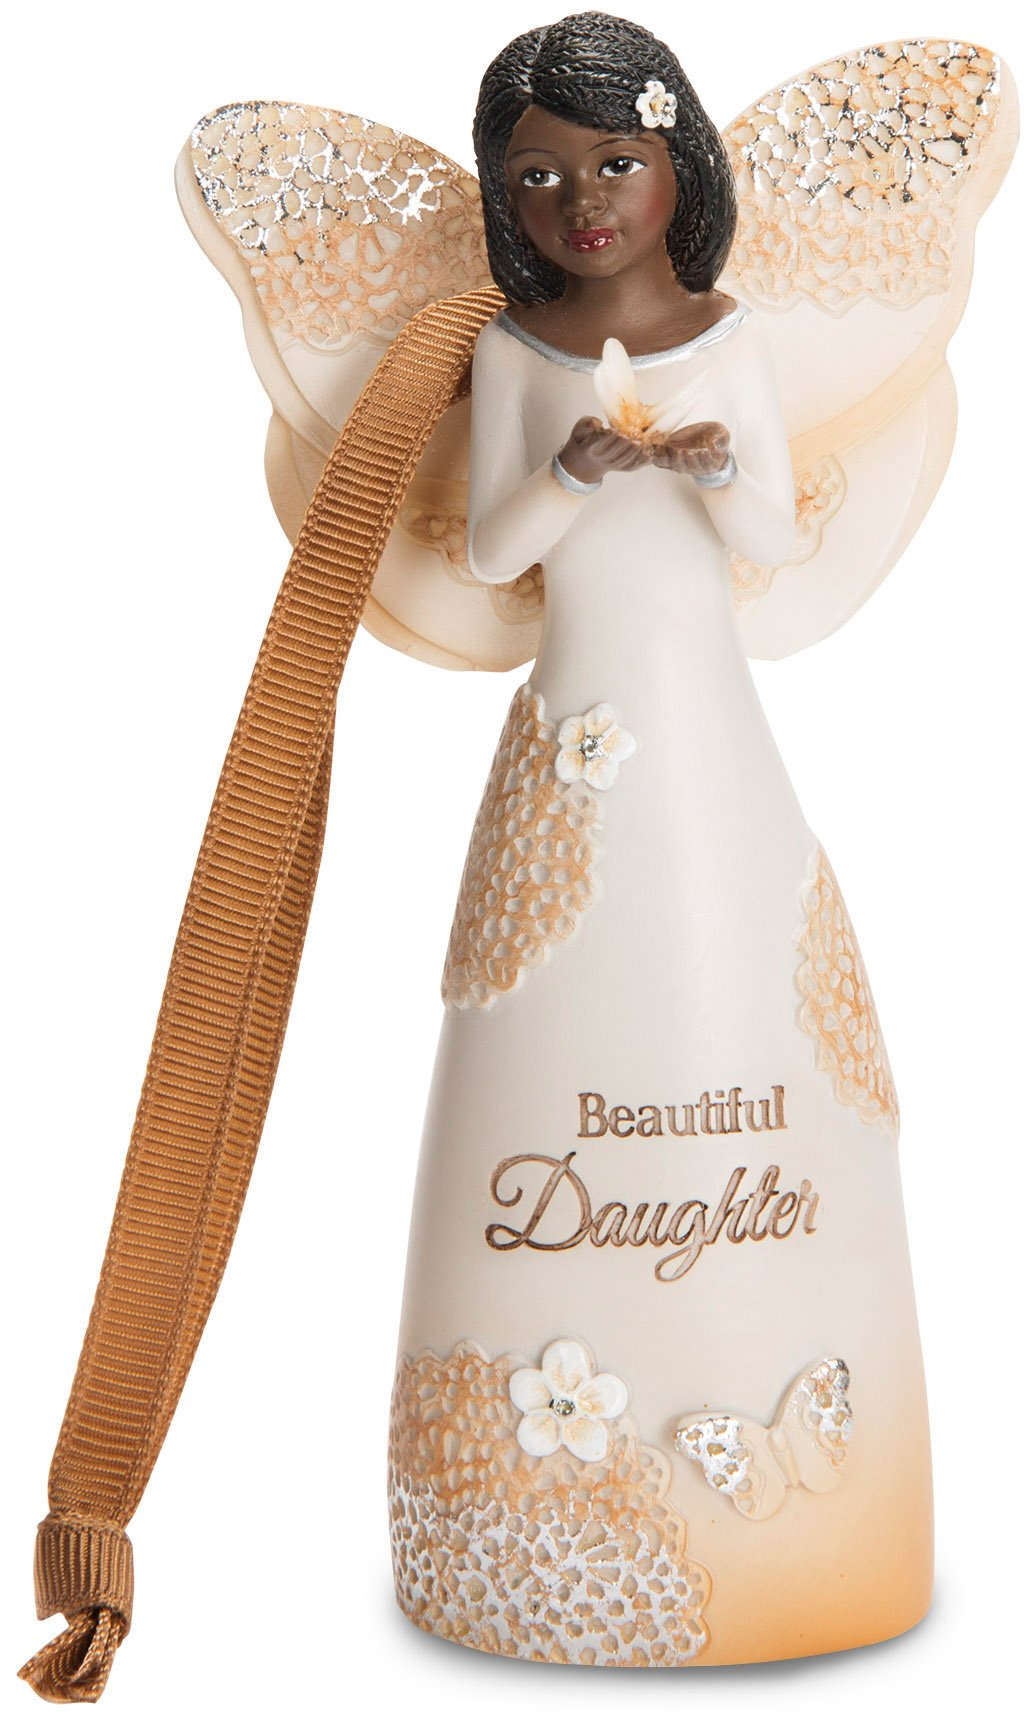 Pavilion Gift Company 19121 Light Your Way Everyday Daughter Ebony Angel Figurine/Ornament, 4-1/2'' by Pavilion Gift Company